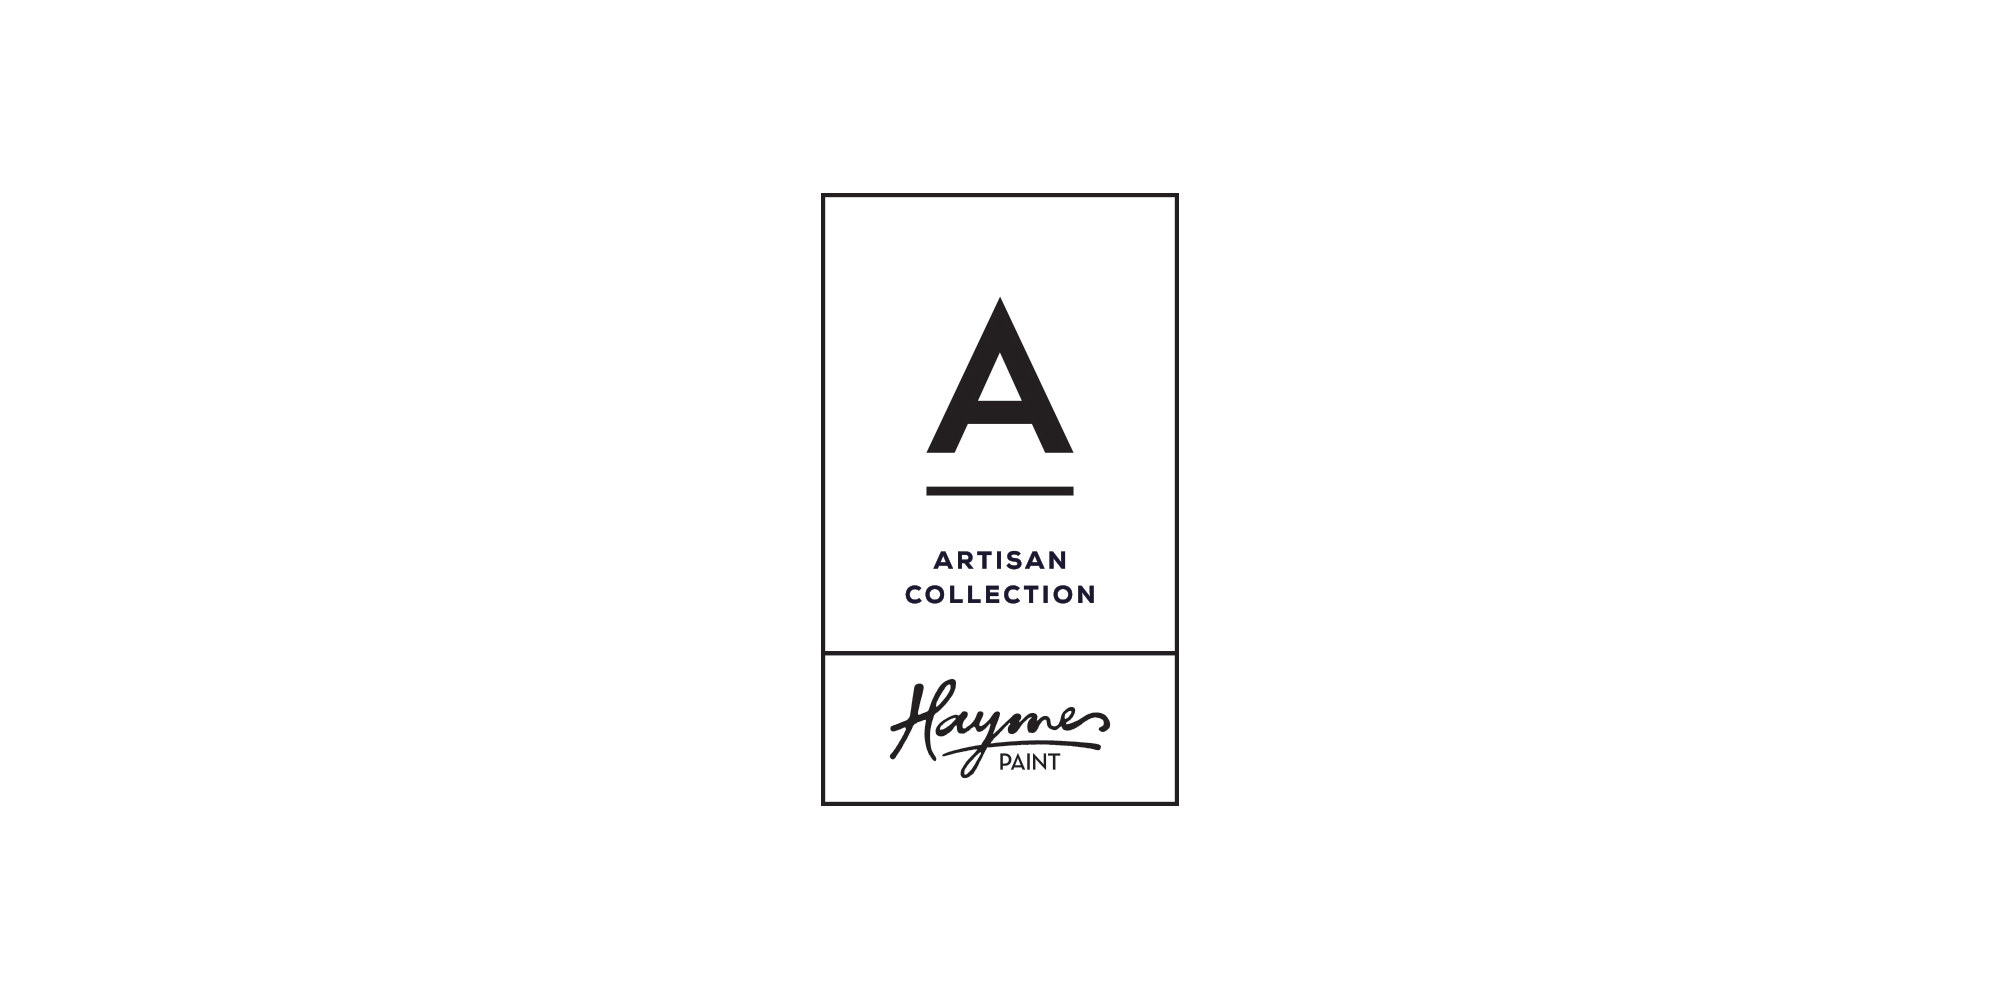 Haymes Artisan Collection - Branding